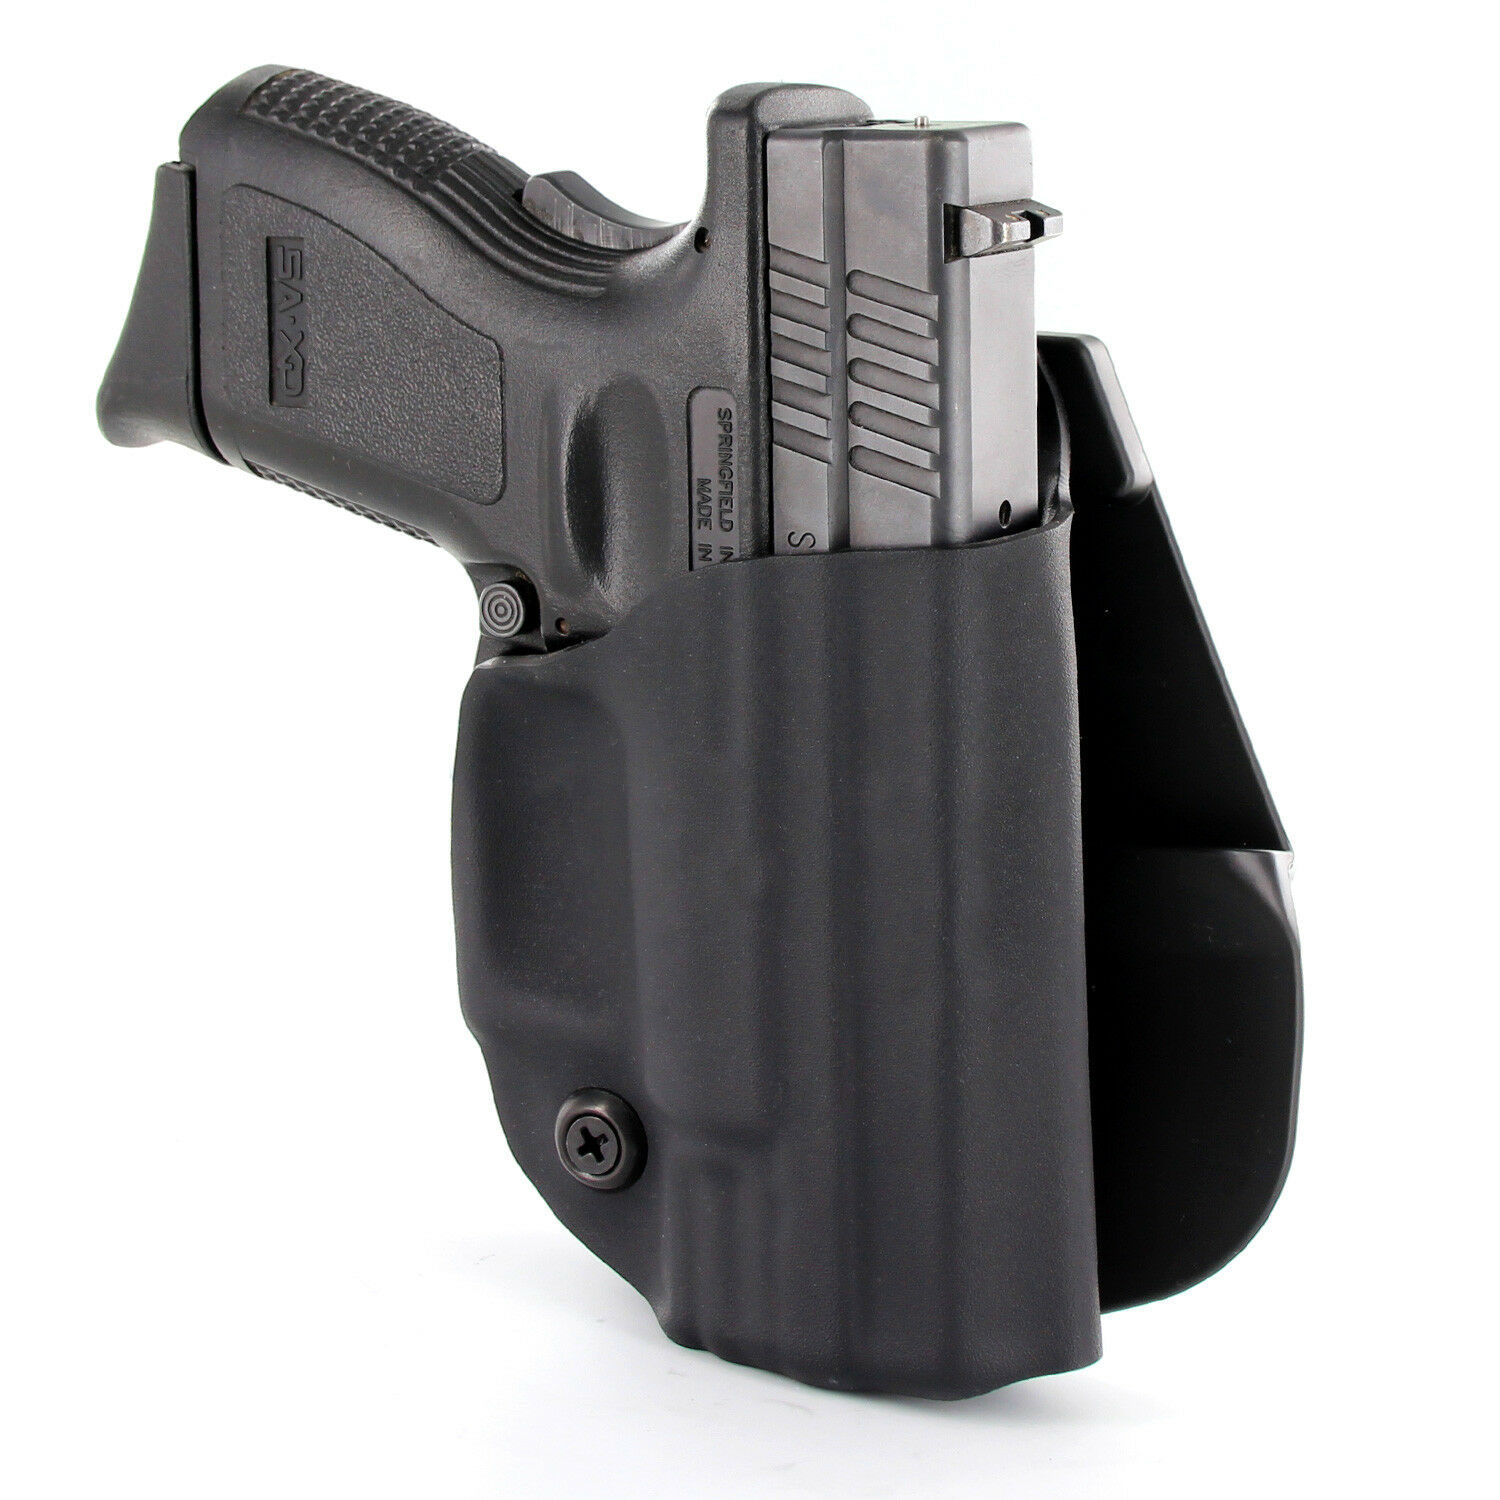 OWB KYDEX PADDLE HOLSTER for guns with Streamlight TLR-7 - MATTE BLACK